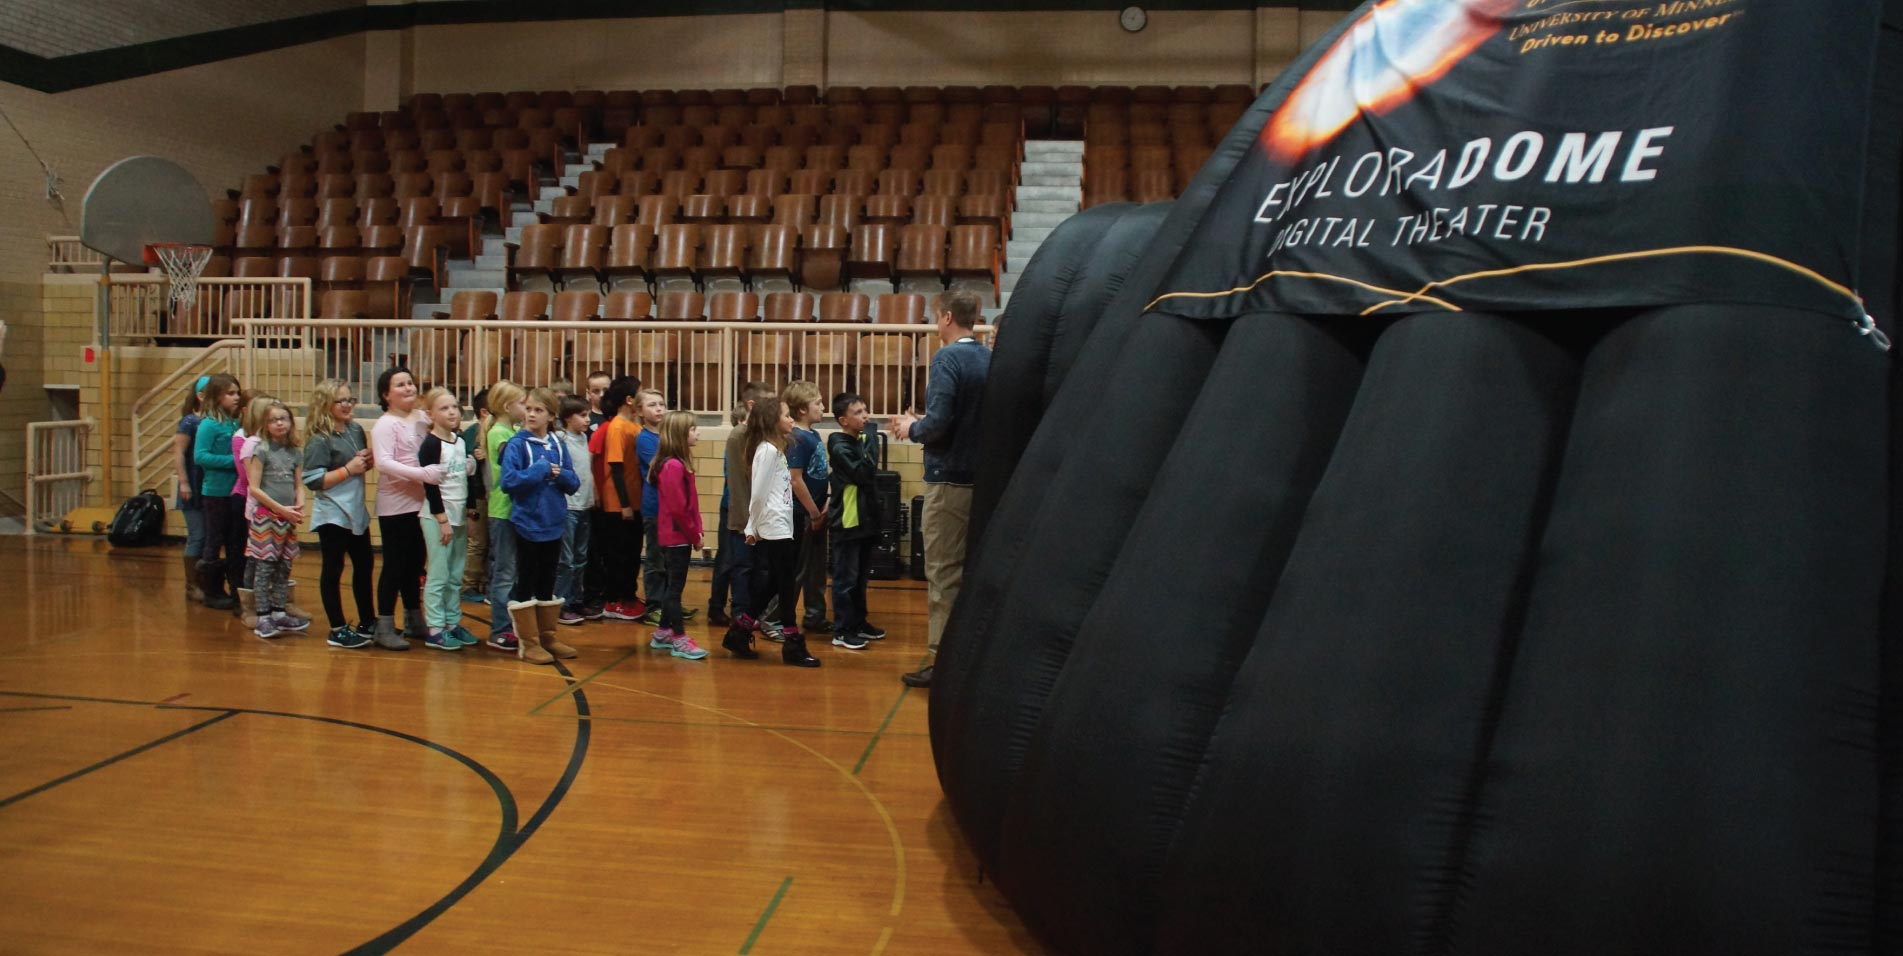 Students lined up outside the ExploraDome